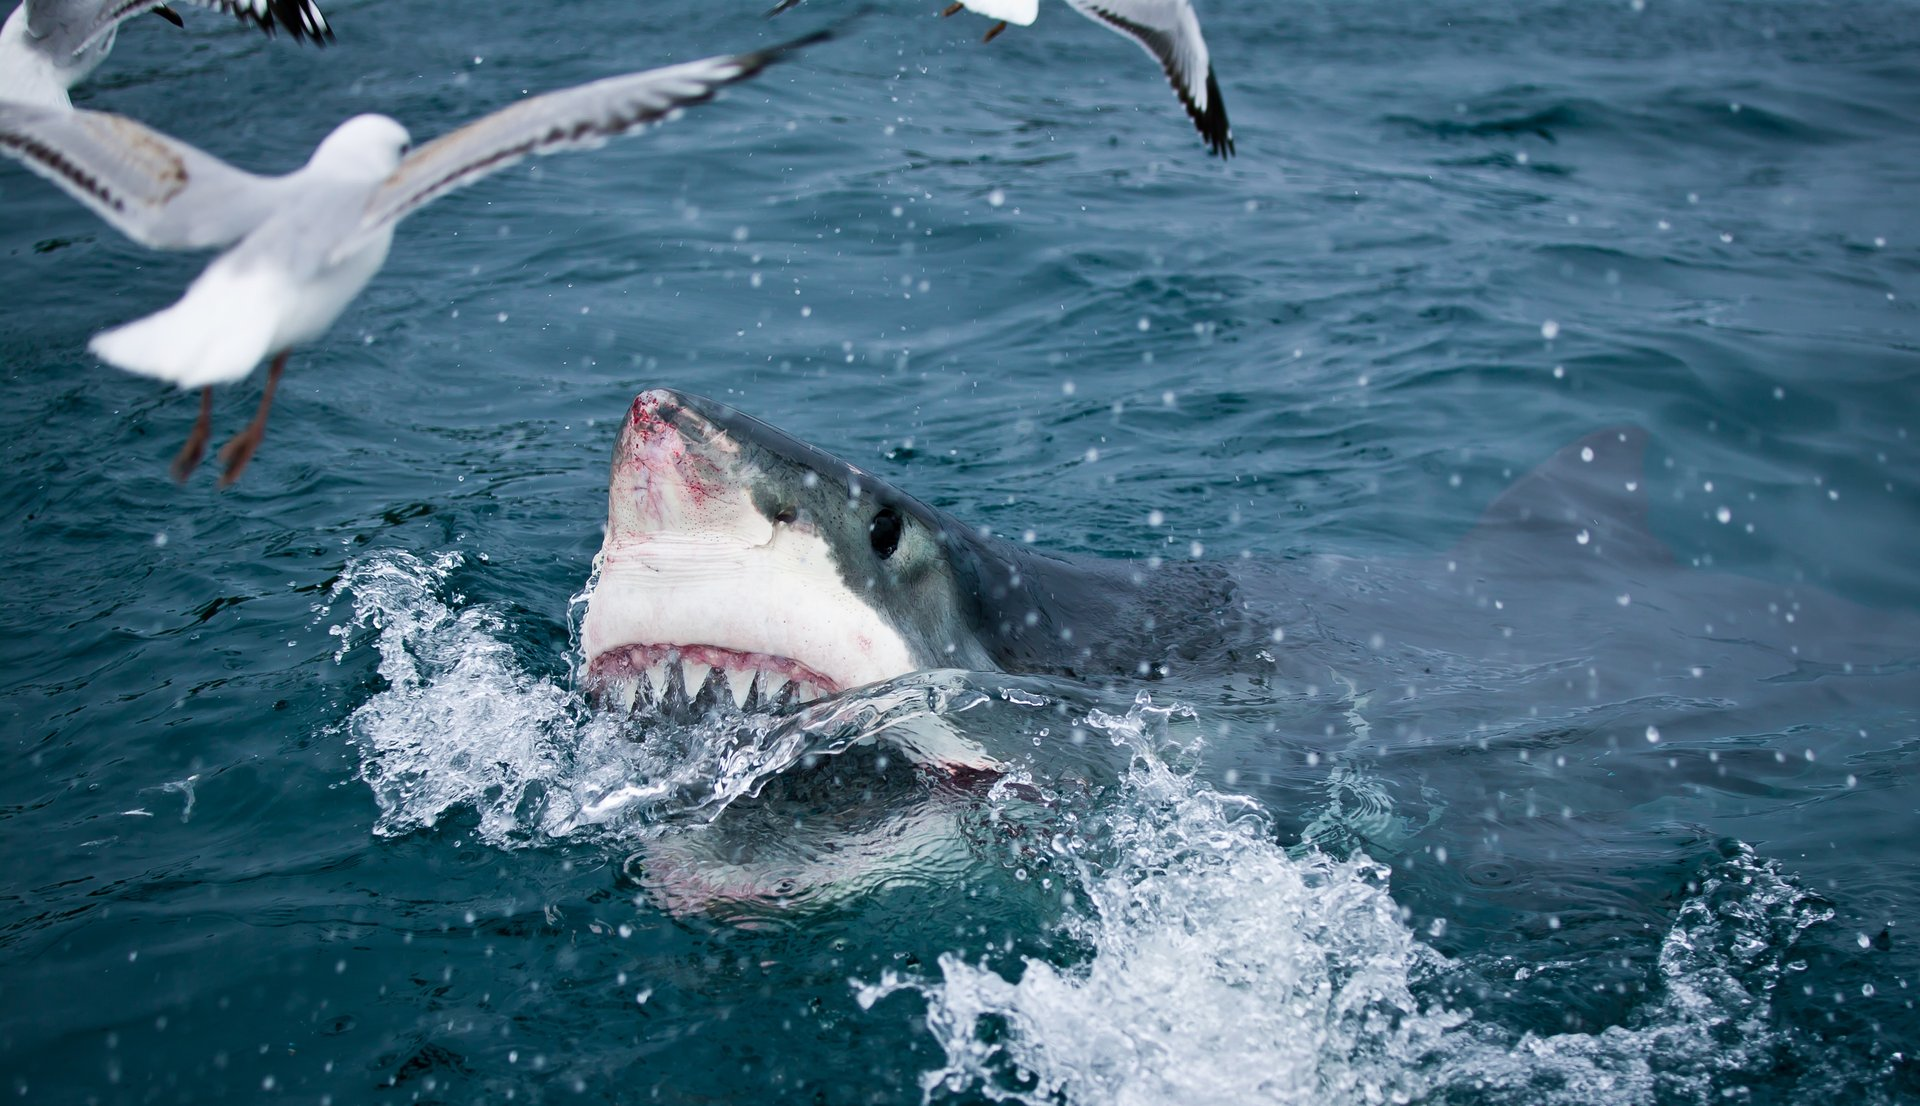 Great White Shark Cage Diving in New Zealand 2020 - Best Time